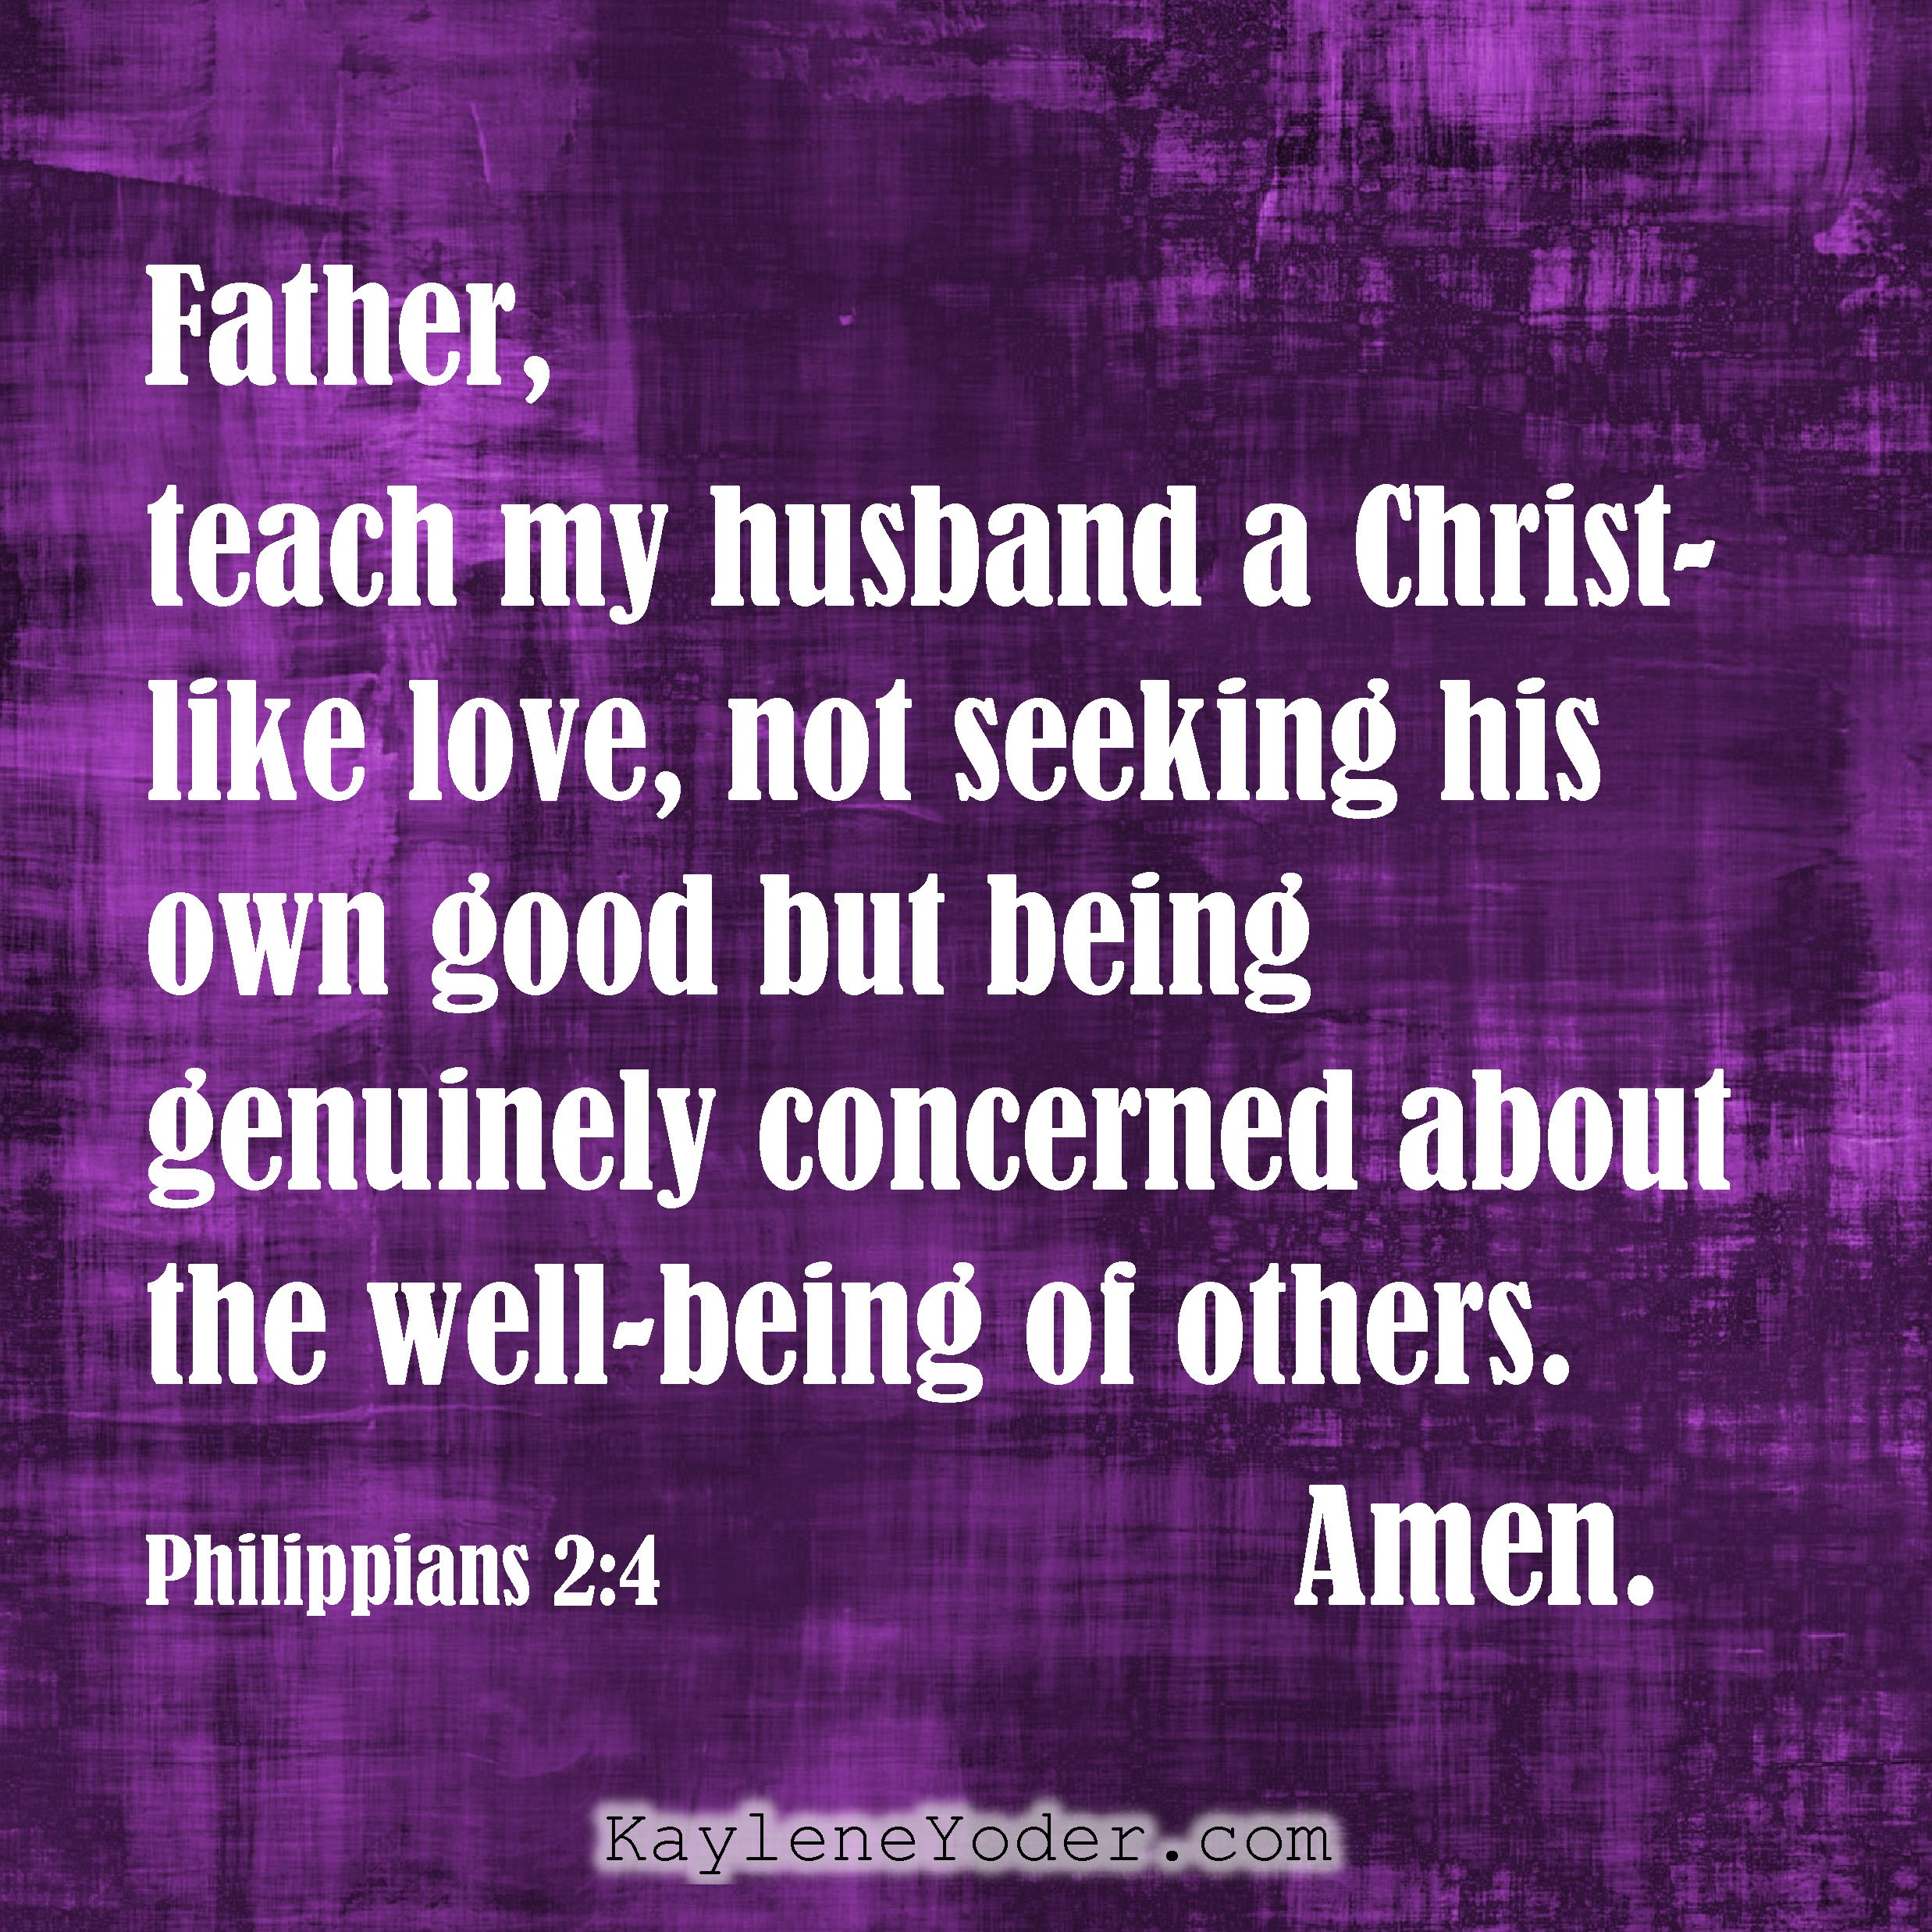 A Prayer for Your Husband to Grow in Christ-like Love - Kaylene Yoder